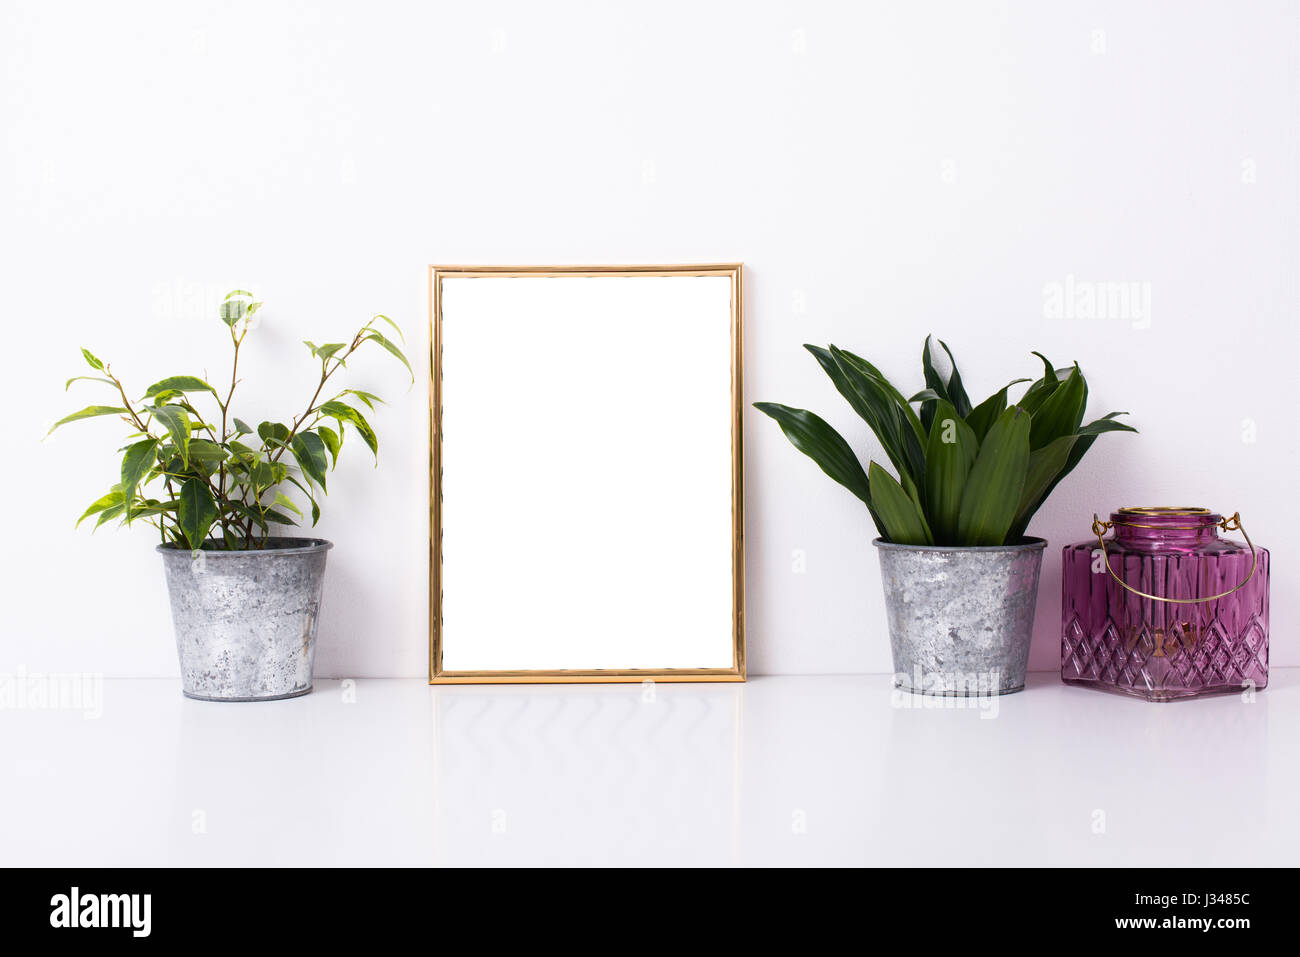 Golden Frame Mock Up On White Wall Background Home Decor With